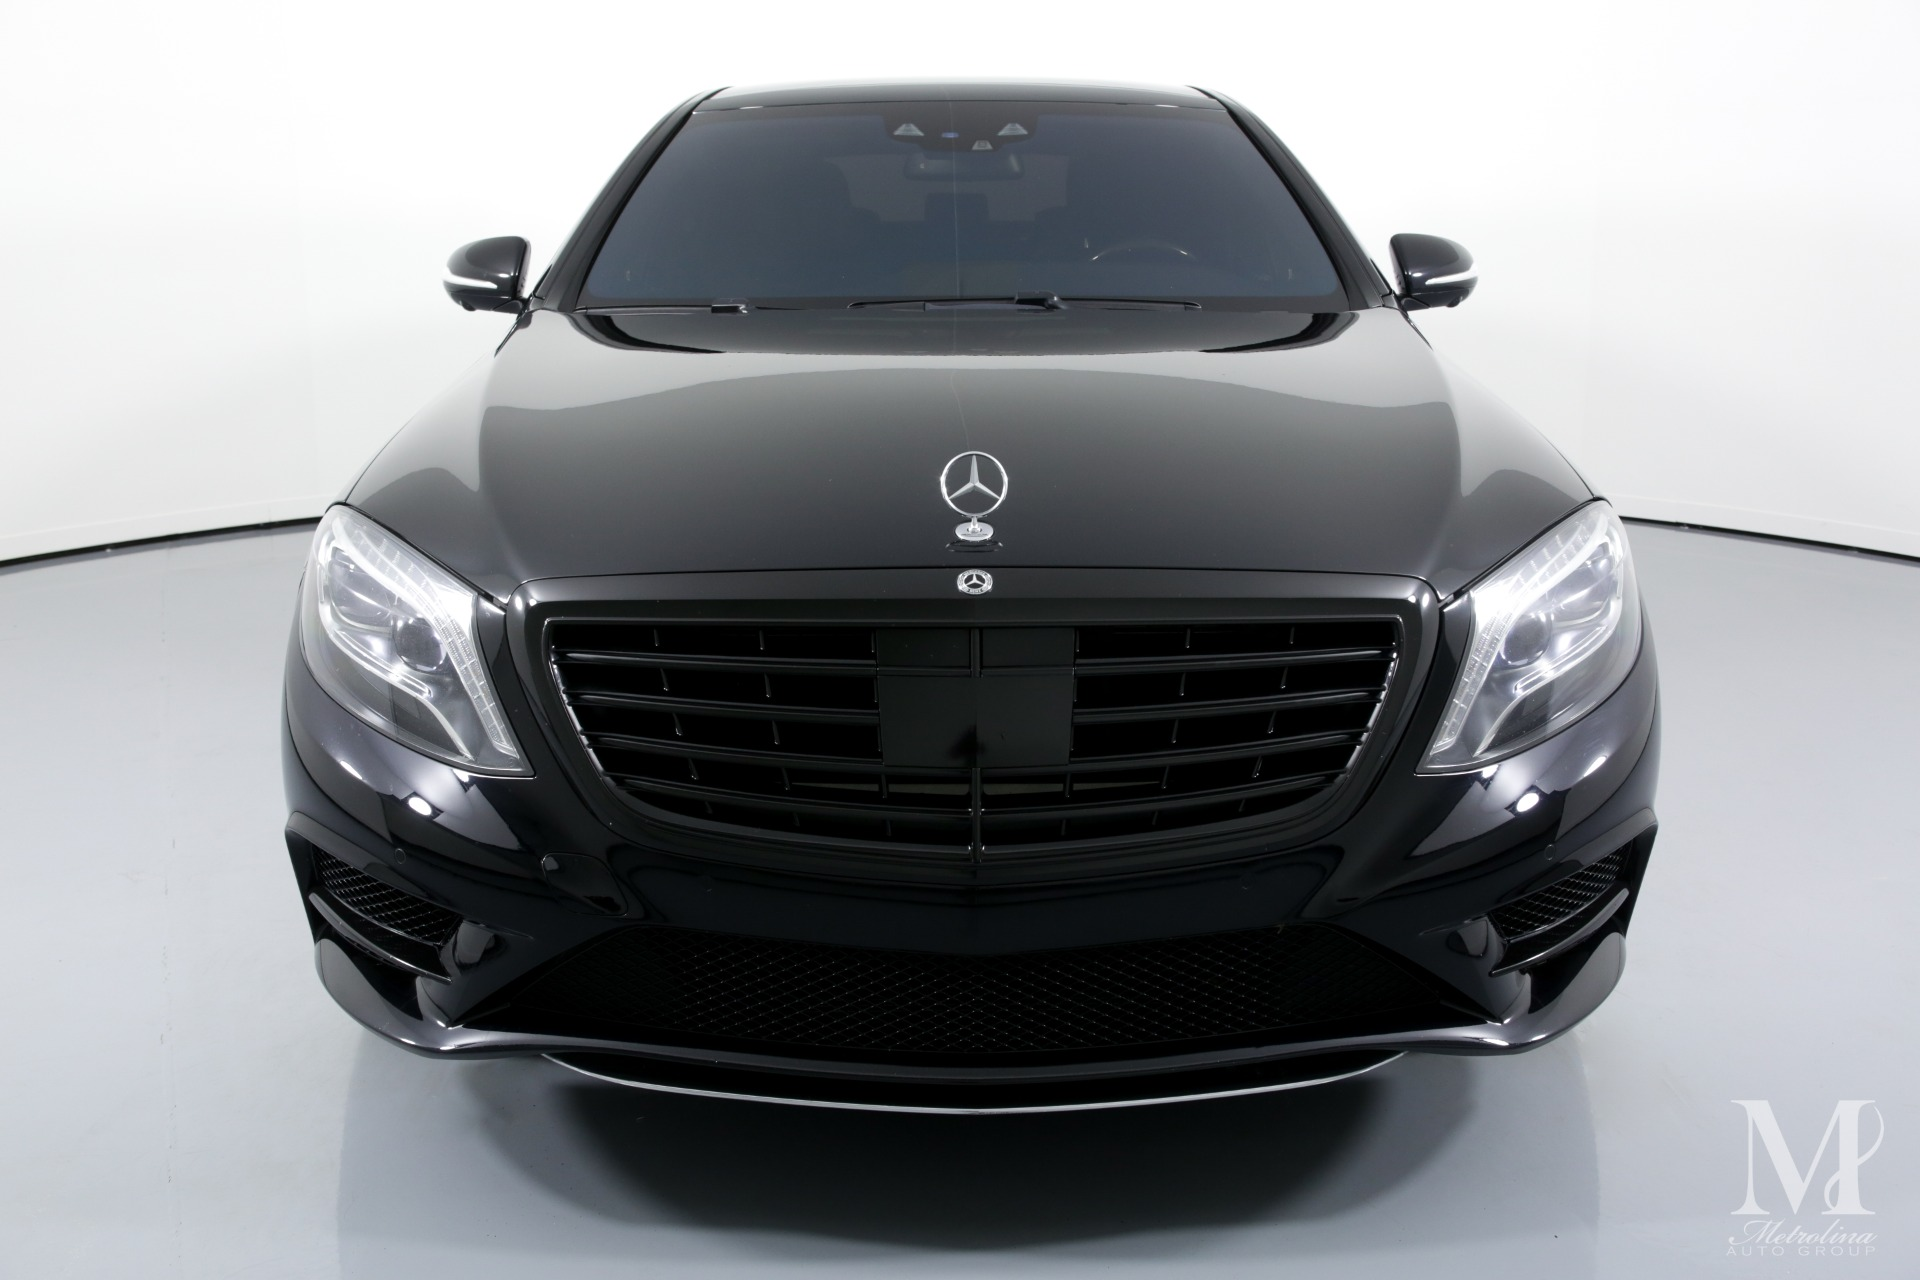 Used 2015 Mercedes-Benz S-Class S 550 for sale $42,996 at Metrolina Auto Group in Charlotte NC 28217 - 3